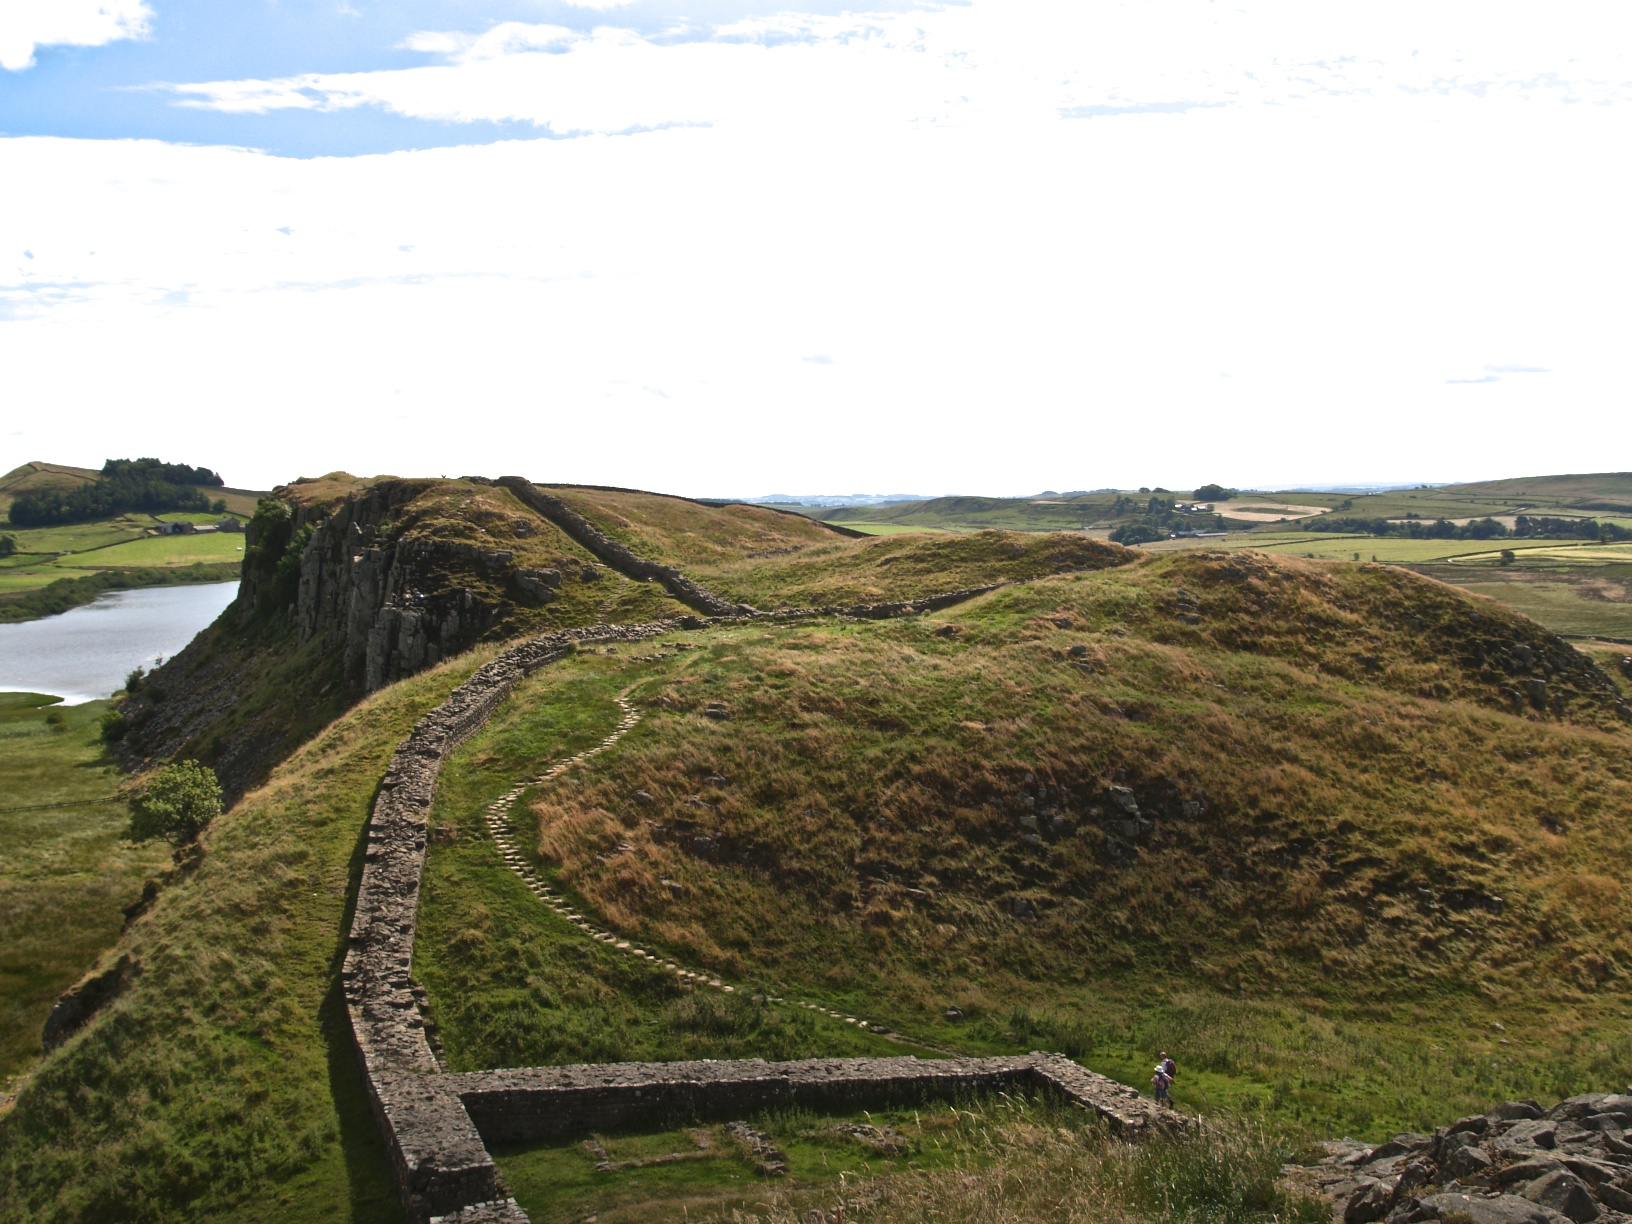 Figure 80B - Hadrian's Wall, Northumberland National Park, Great Britain